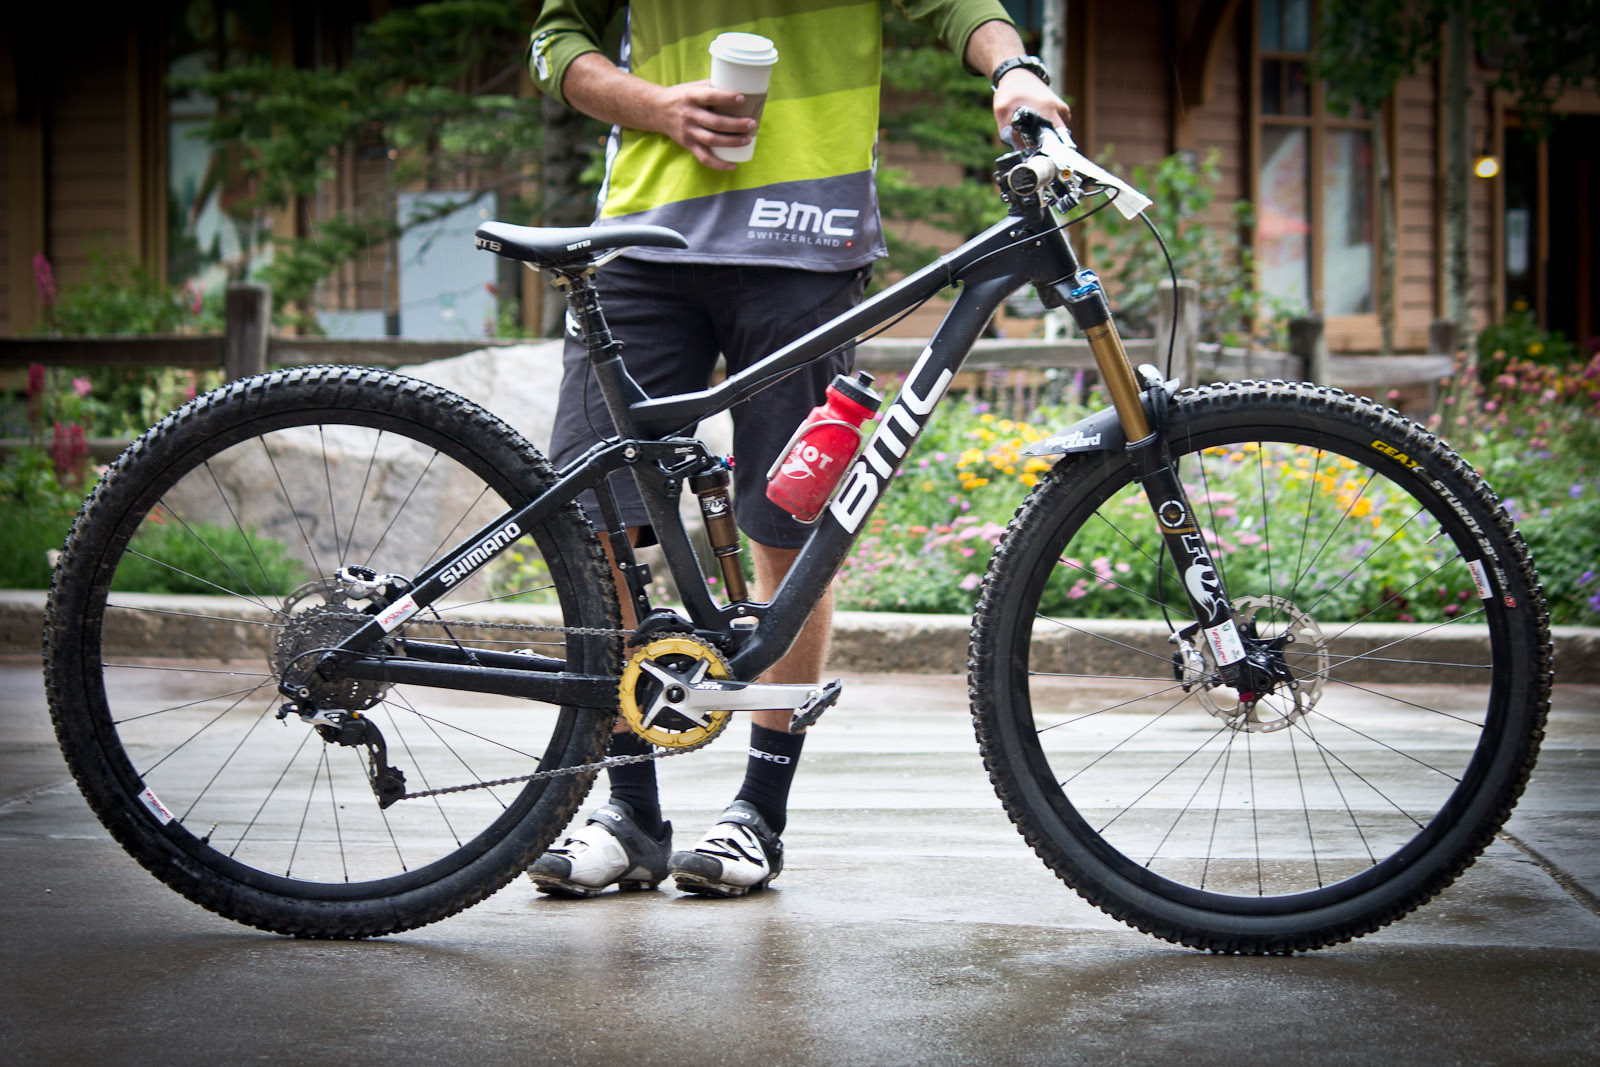 PIT BITS: Aaron Bradford's 2014 BMC 29er with Shimano XTR - Pit Bits and Action from the Enduro World Series at Trestle Bike Park - Mountain Biking Pictures - Vital MTB